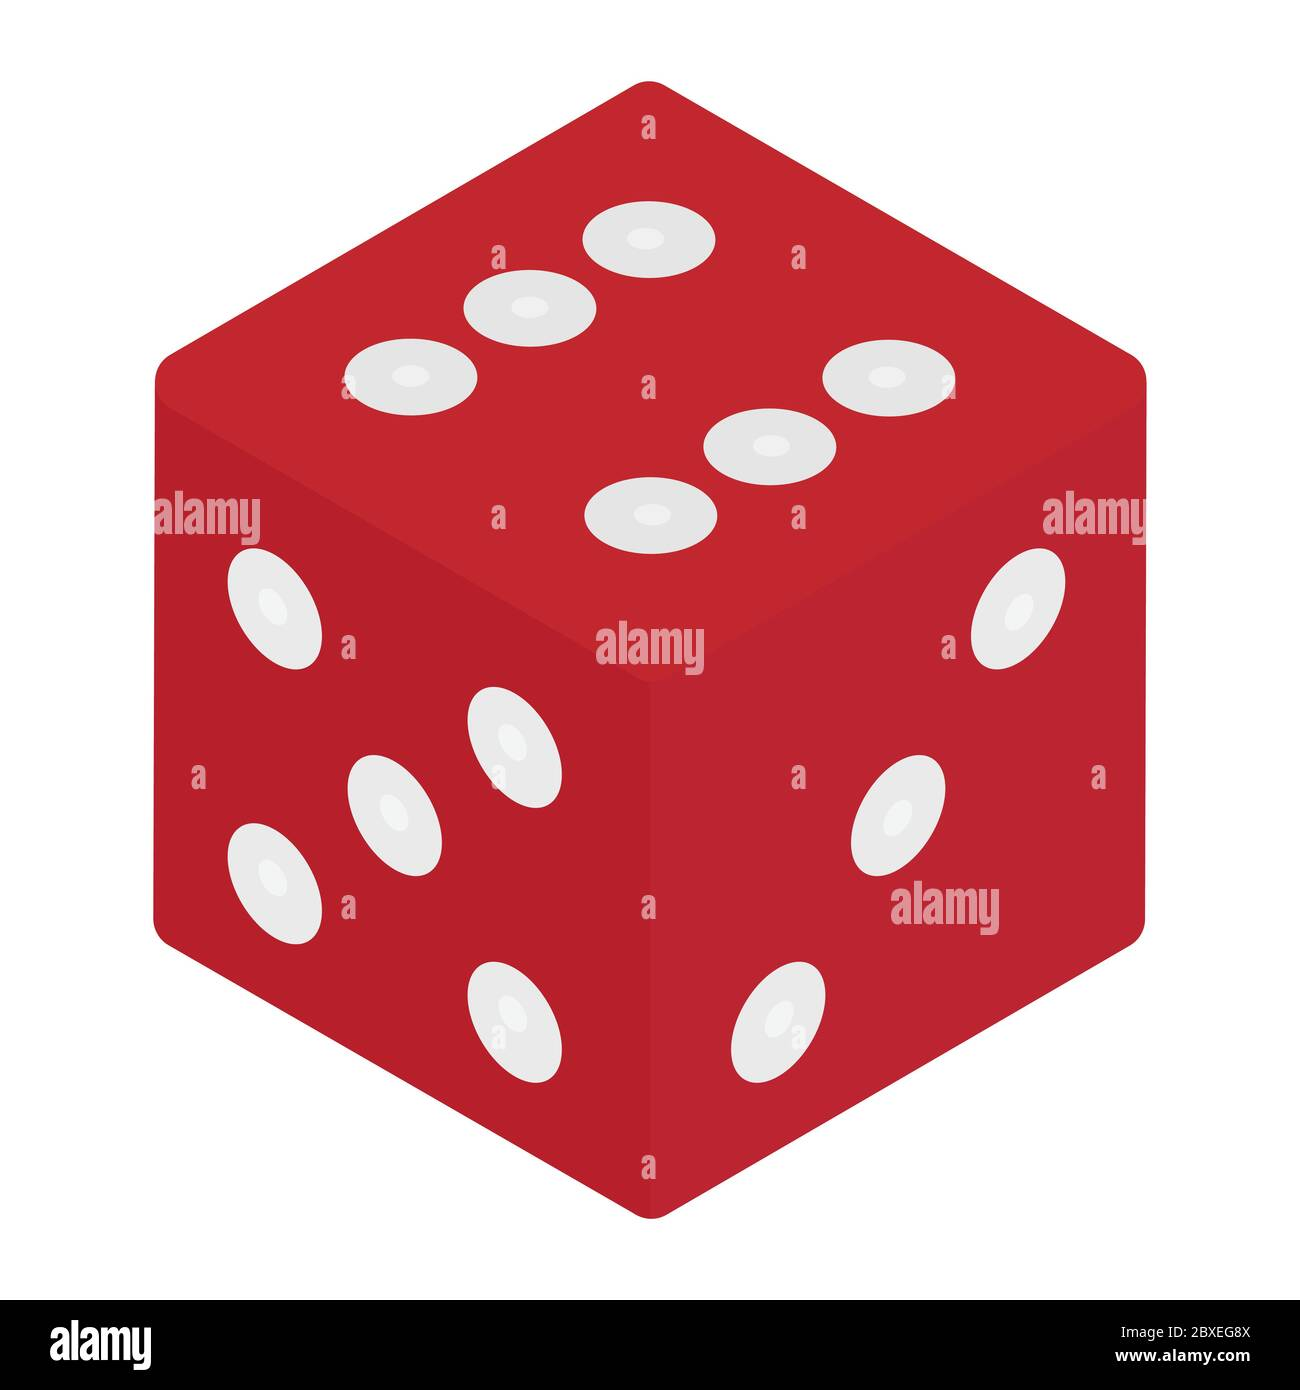 Red Game Dice Isometric View Isolated On White Background Casino Gambling Concept Vector Stock Vector Image Art Alamy